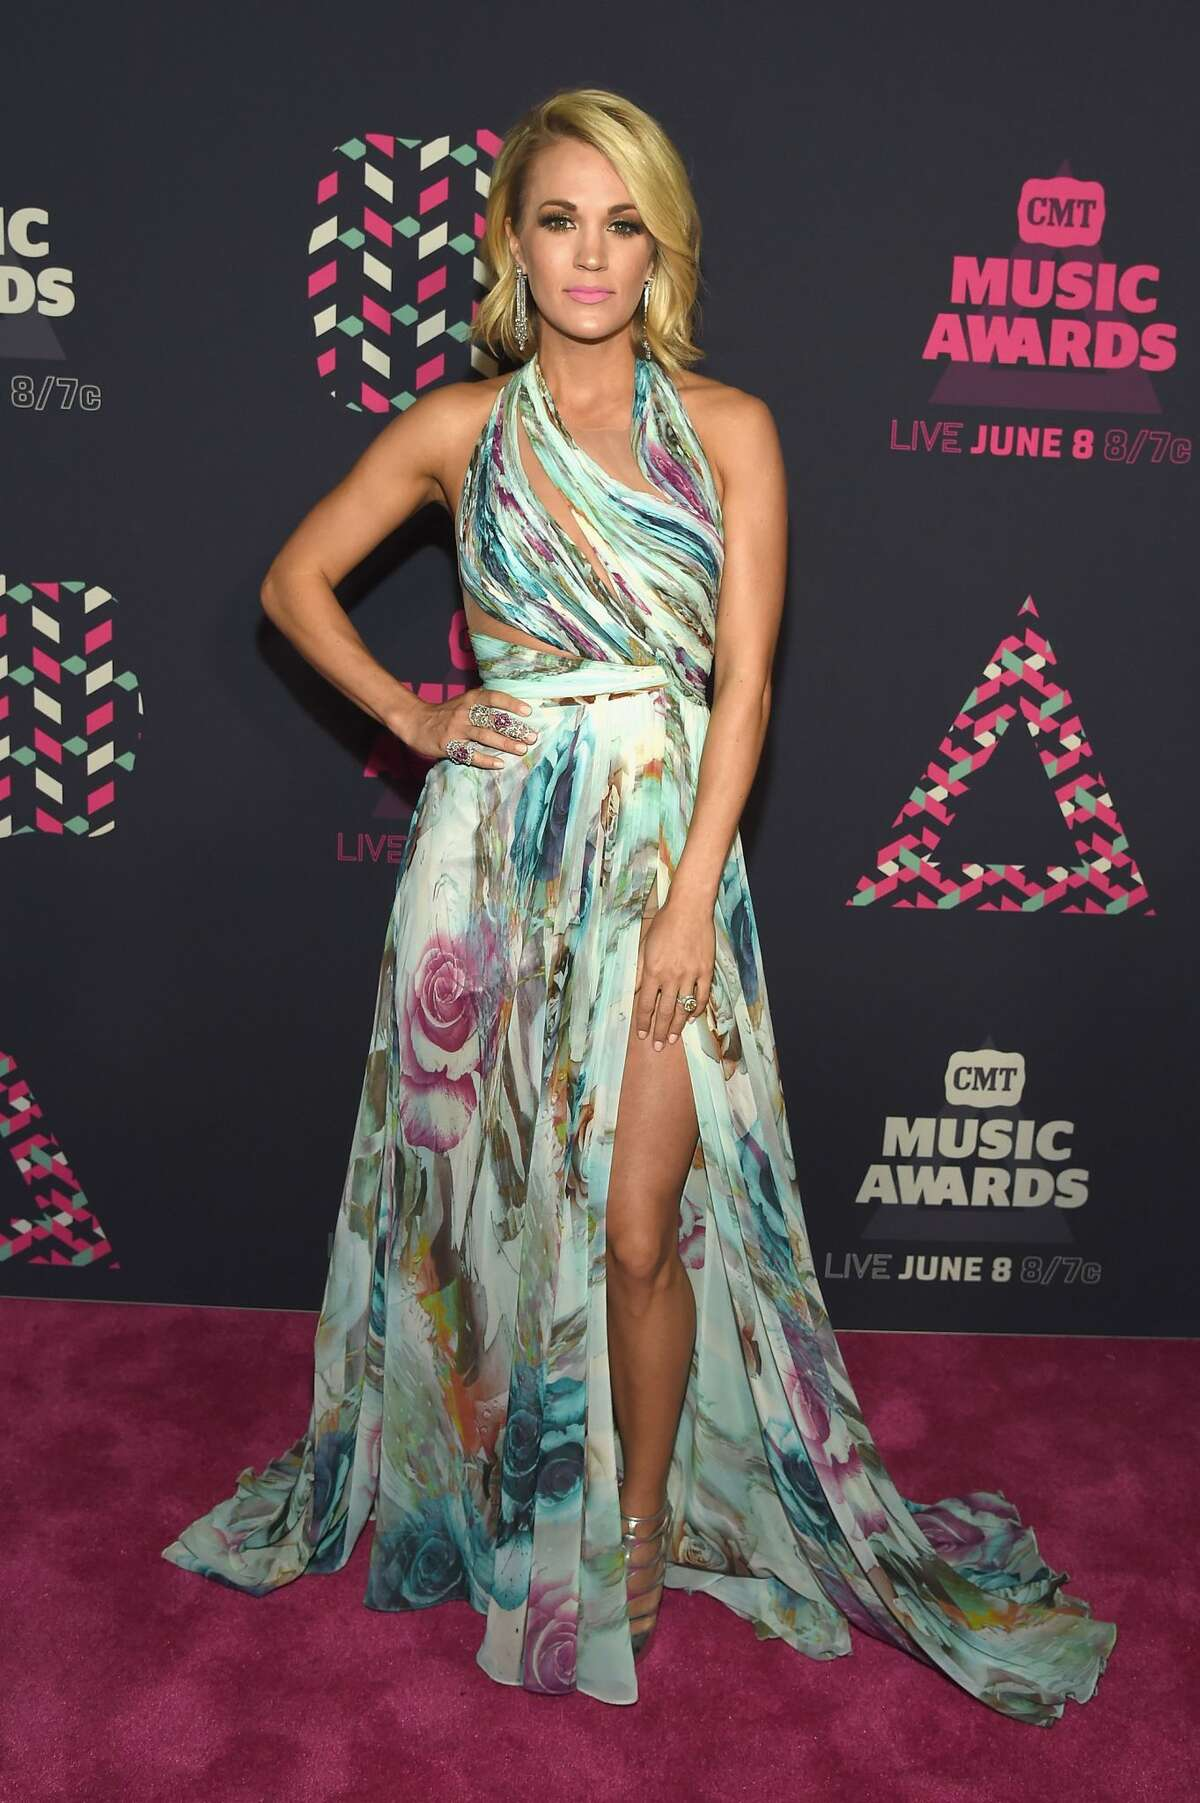 Best: Carrie Underwood Carrie wins the night in this sexy, flowy gown.